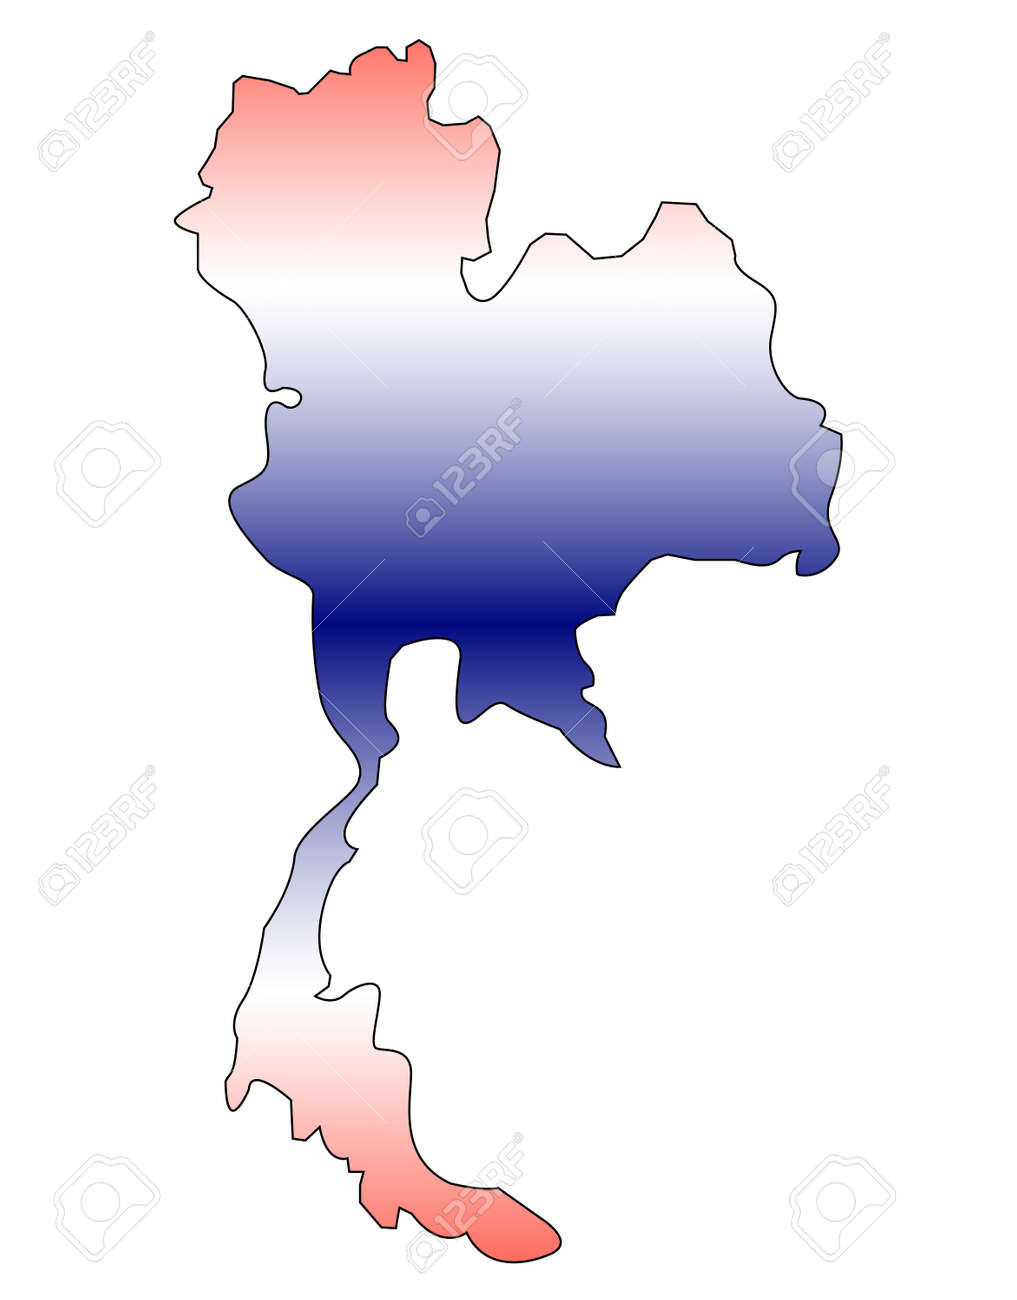 Thailand Outline Map Royalty Free Cliparts Vectors And Stock - Thailand blank map